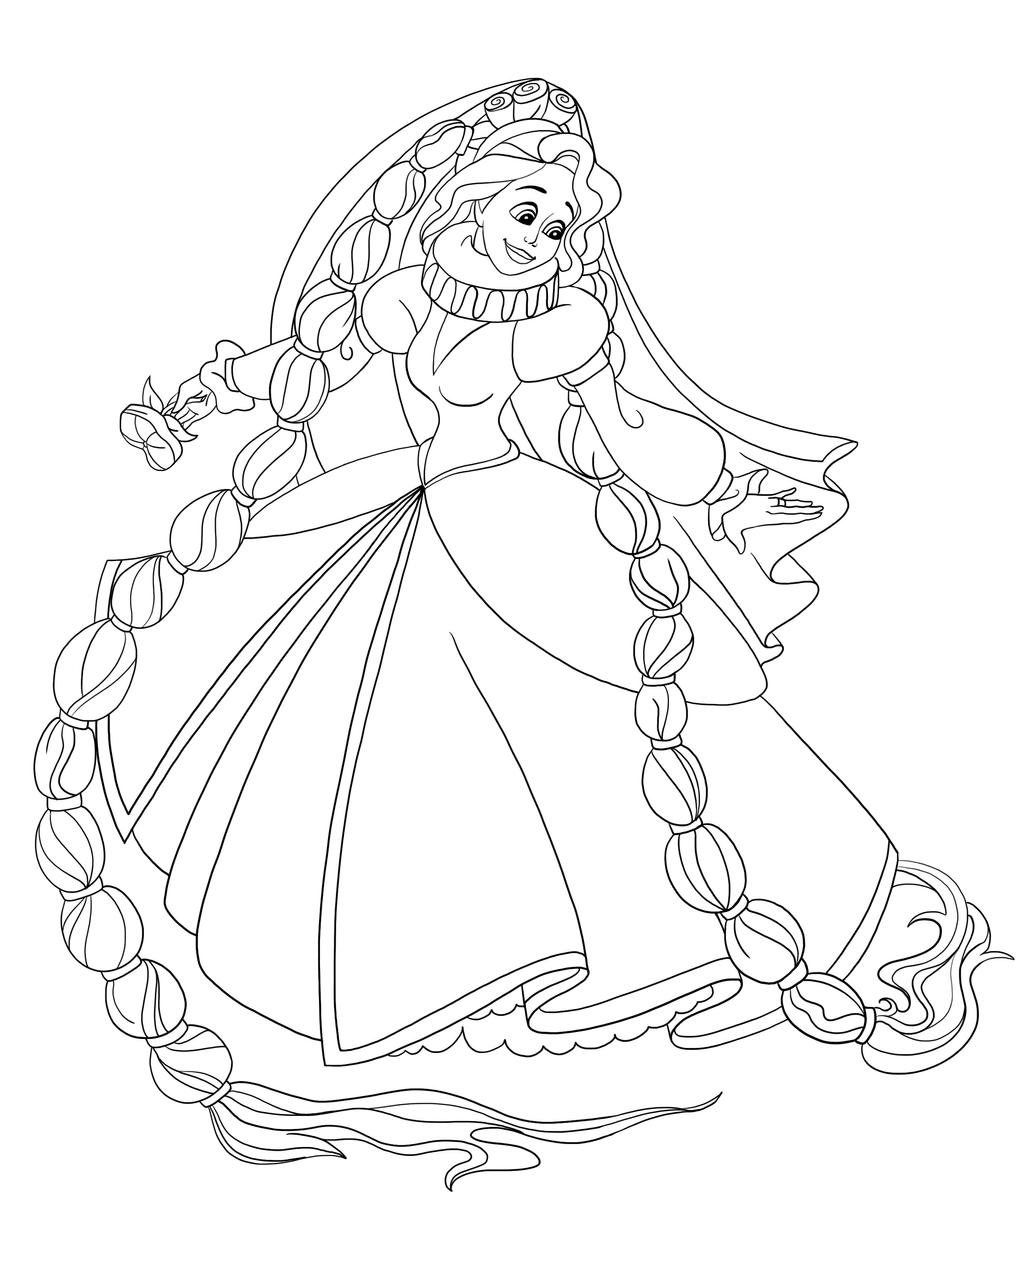 Rapunzel Lineart : Rapunzel as thumbelina iv lines by paola tosca on deviantart